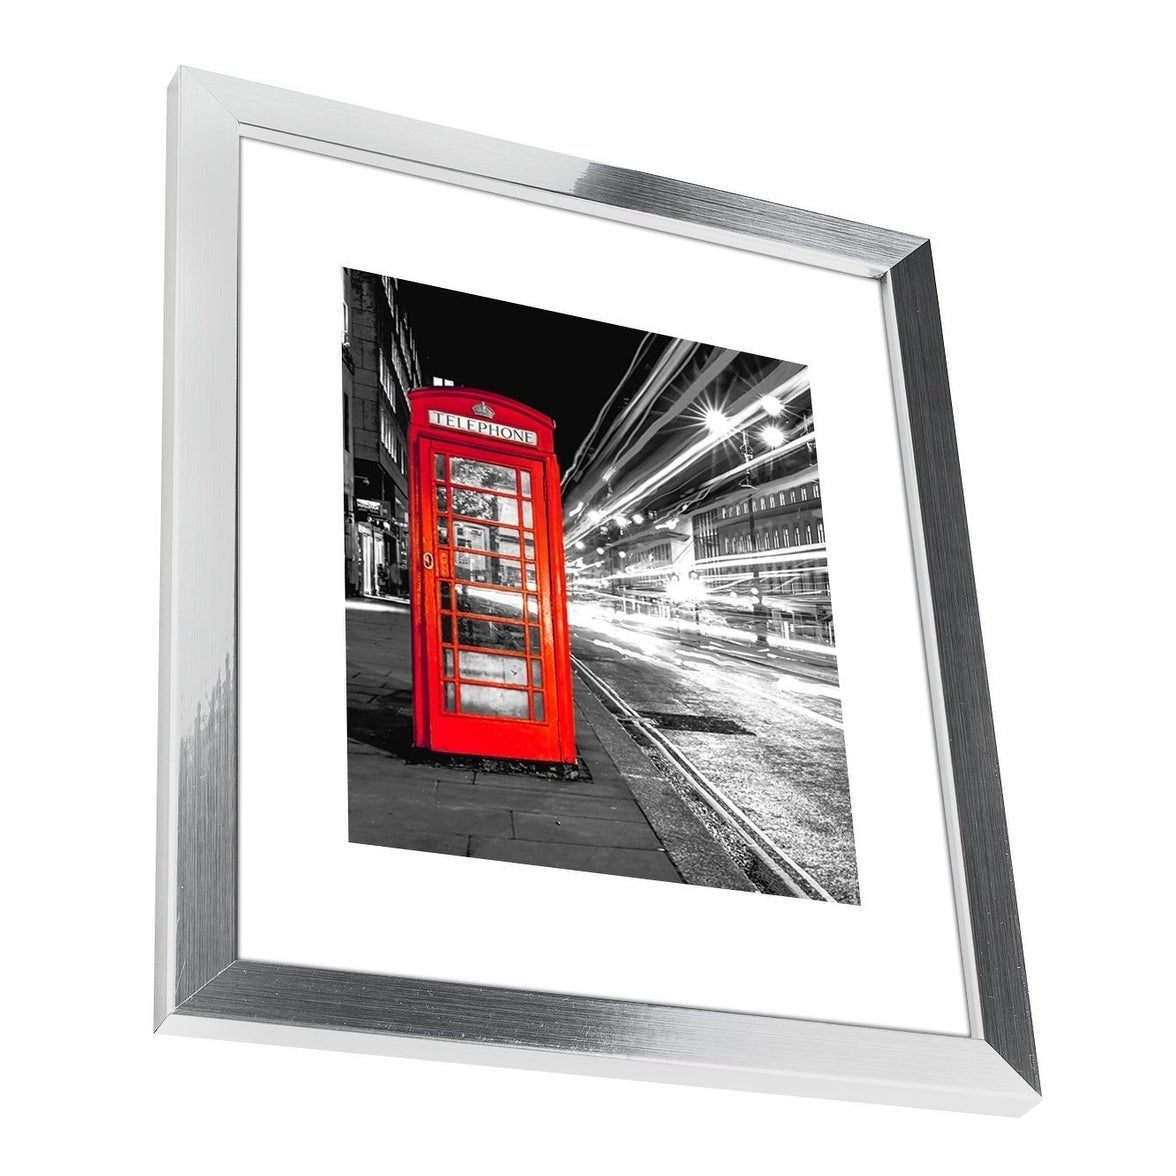 Shop 11x14 Silver Picture Frames - Made to Display Pictures 8x10 ...